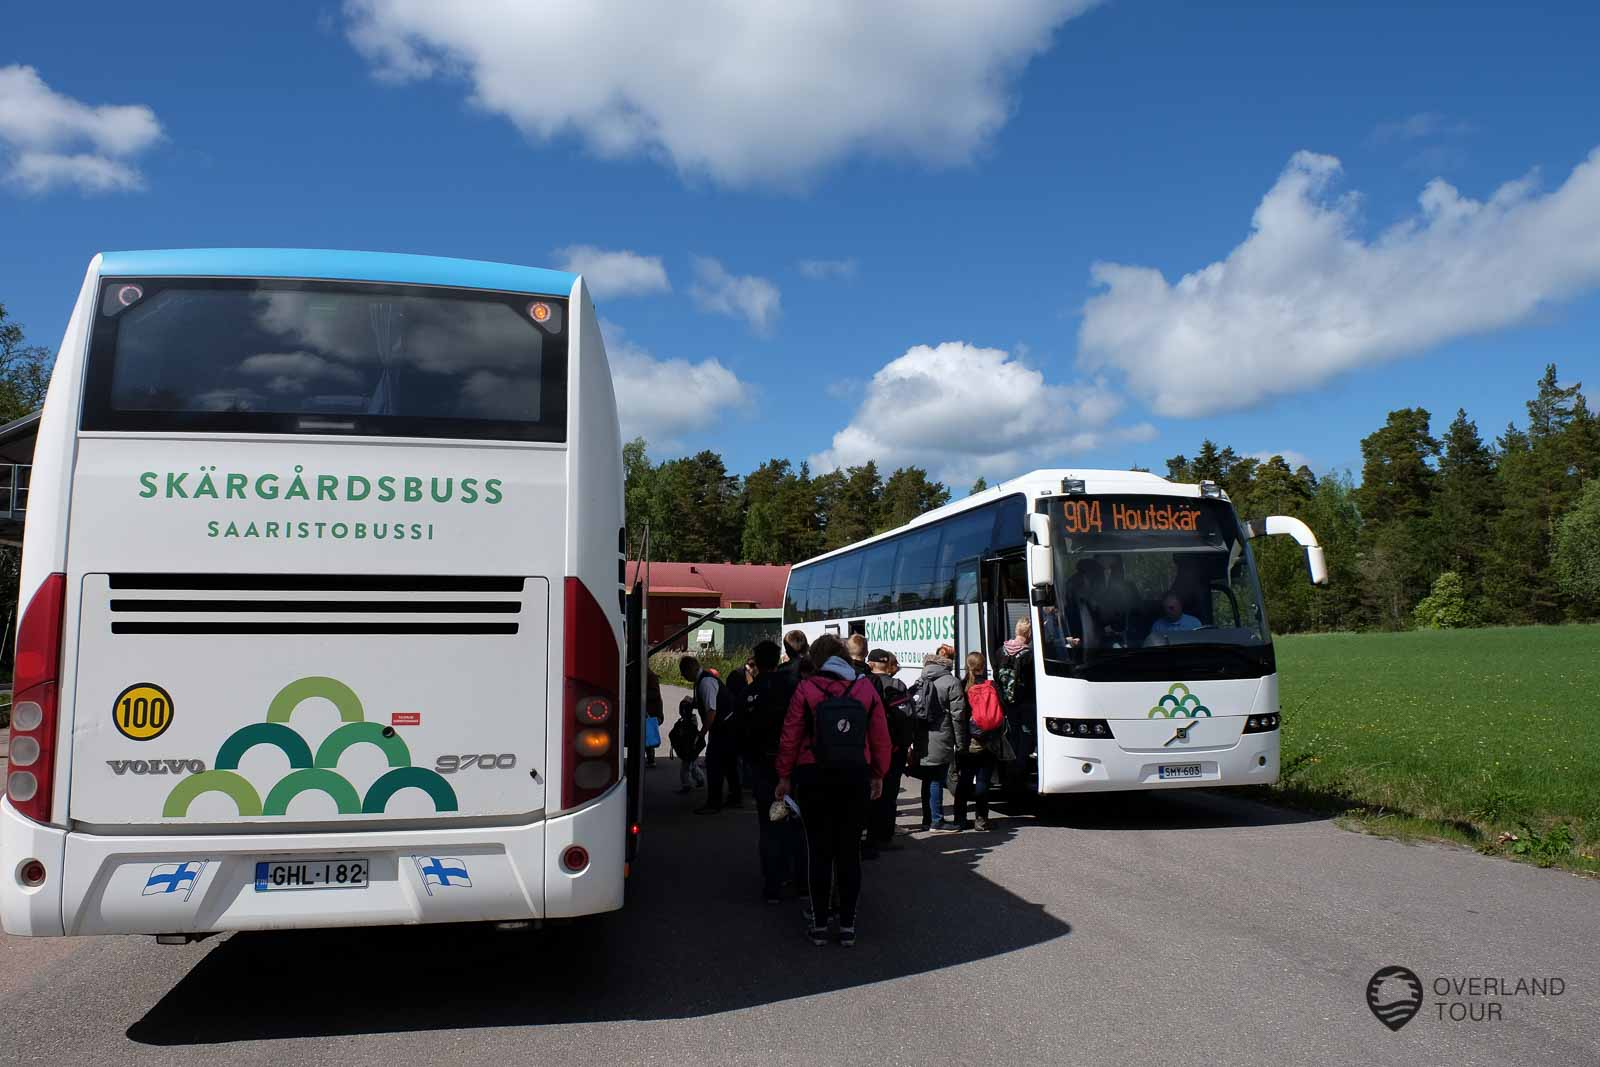 Change from the Skärgårdsbuss line 903 to the line 904 to Houtskär